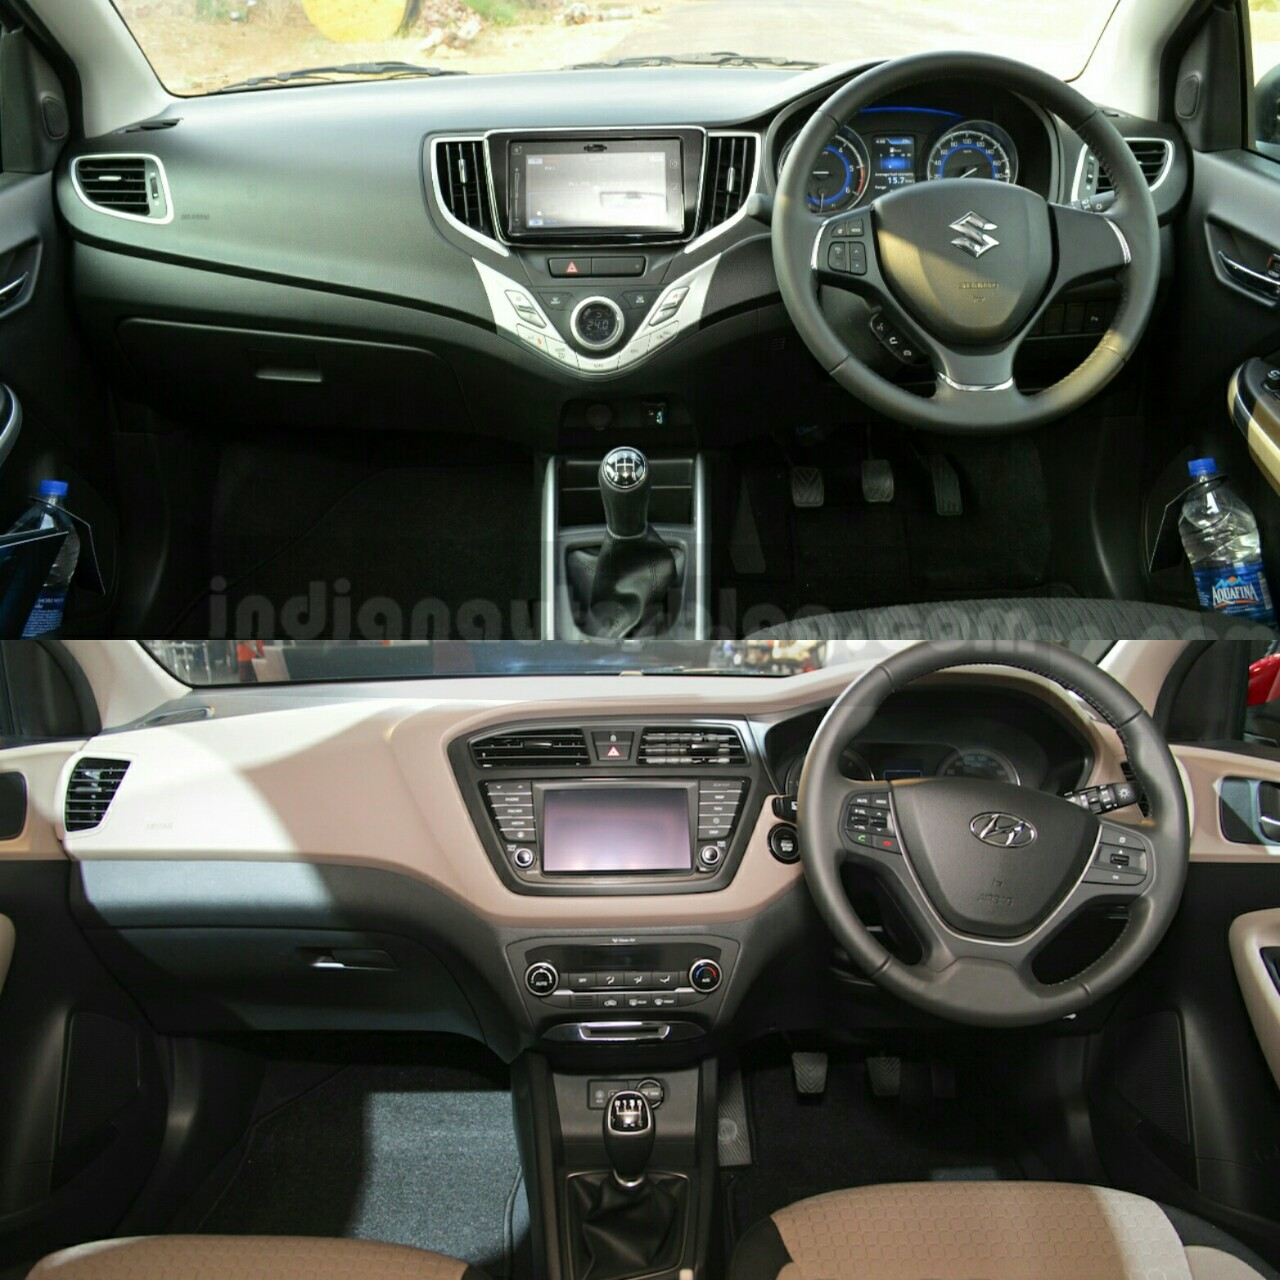 Maruti baleno vs hyundai i20 comparison review - Hyundai i20 interior ...